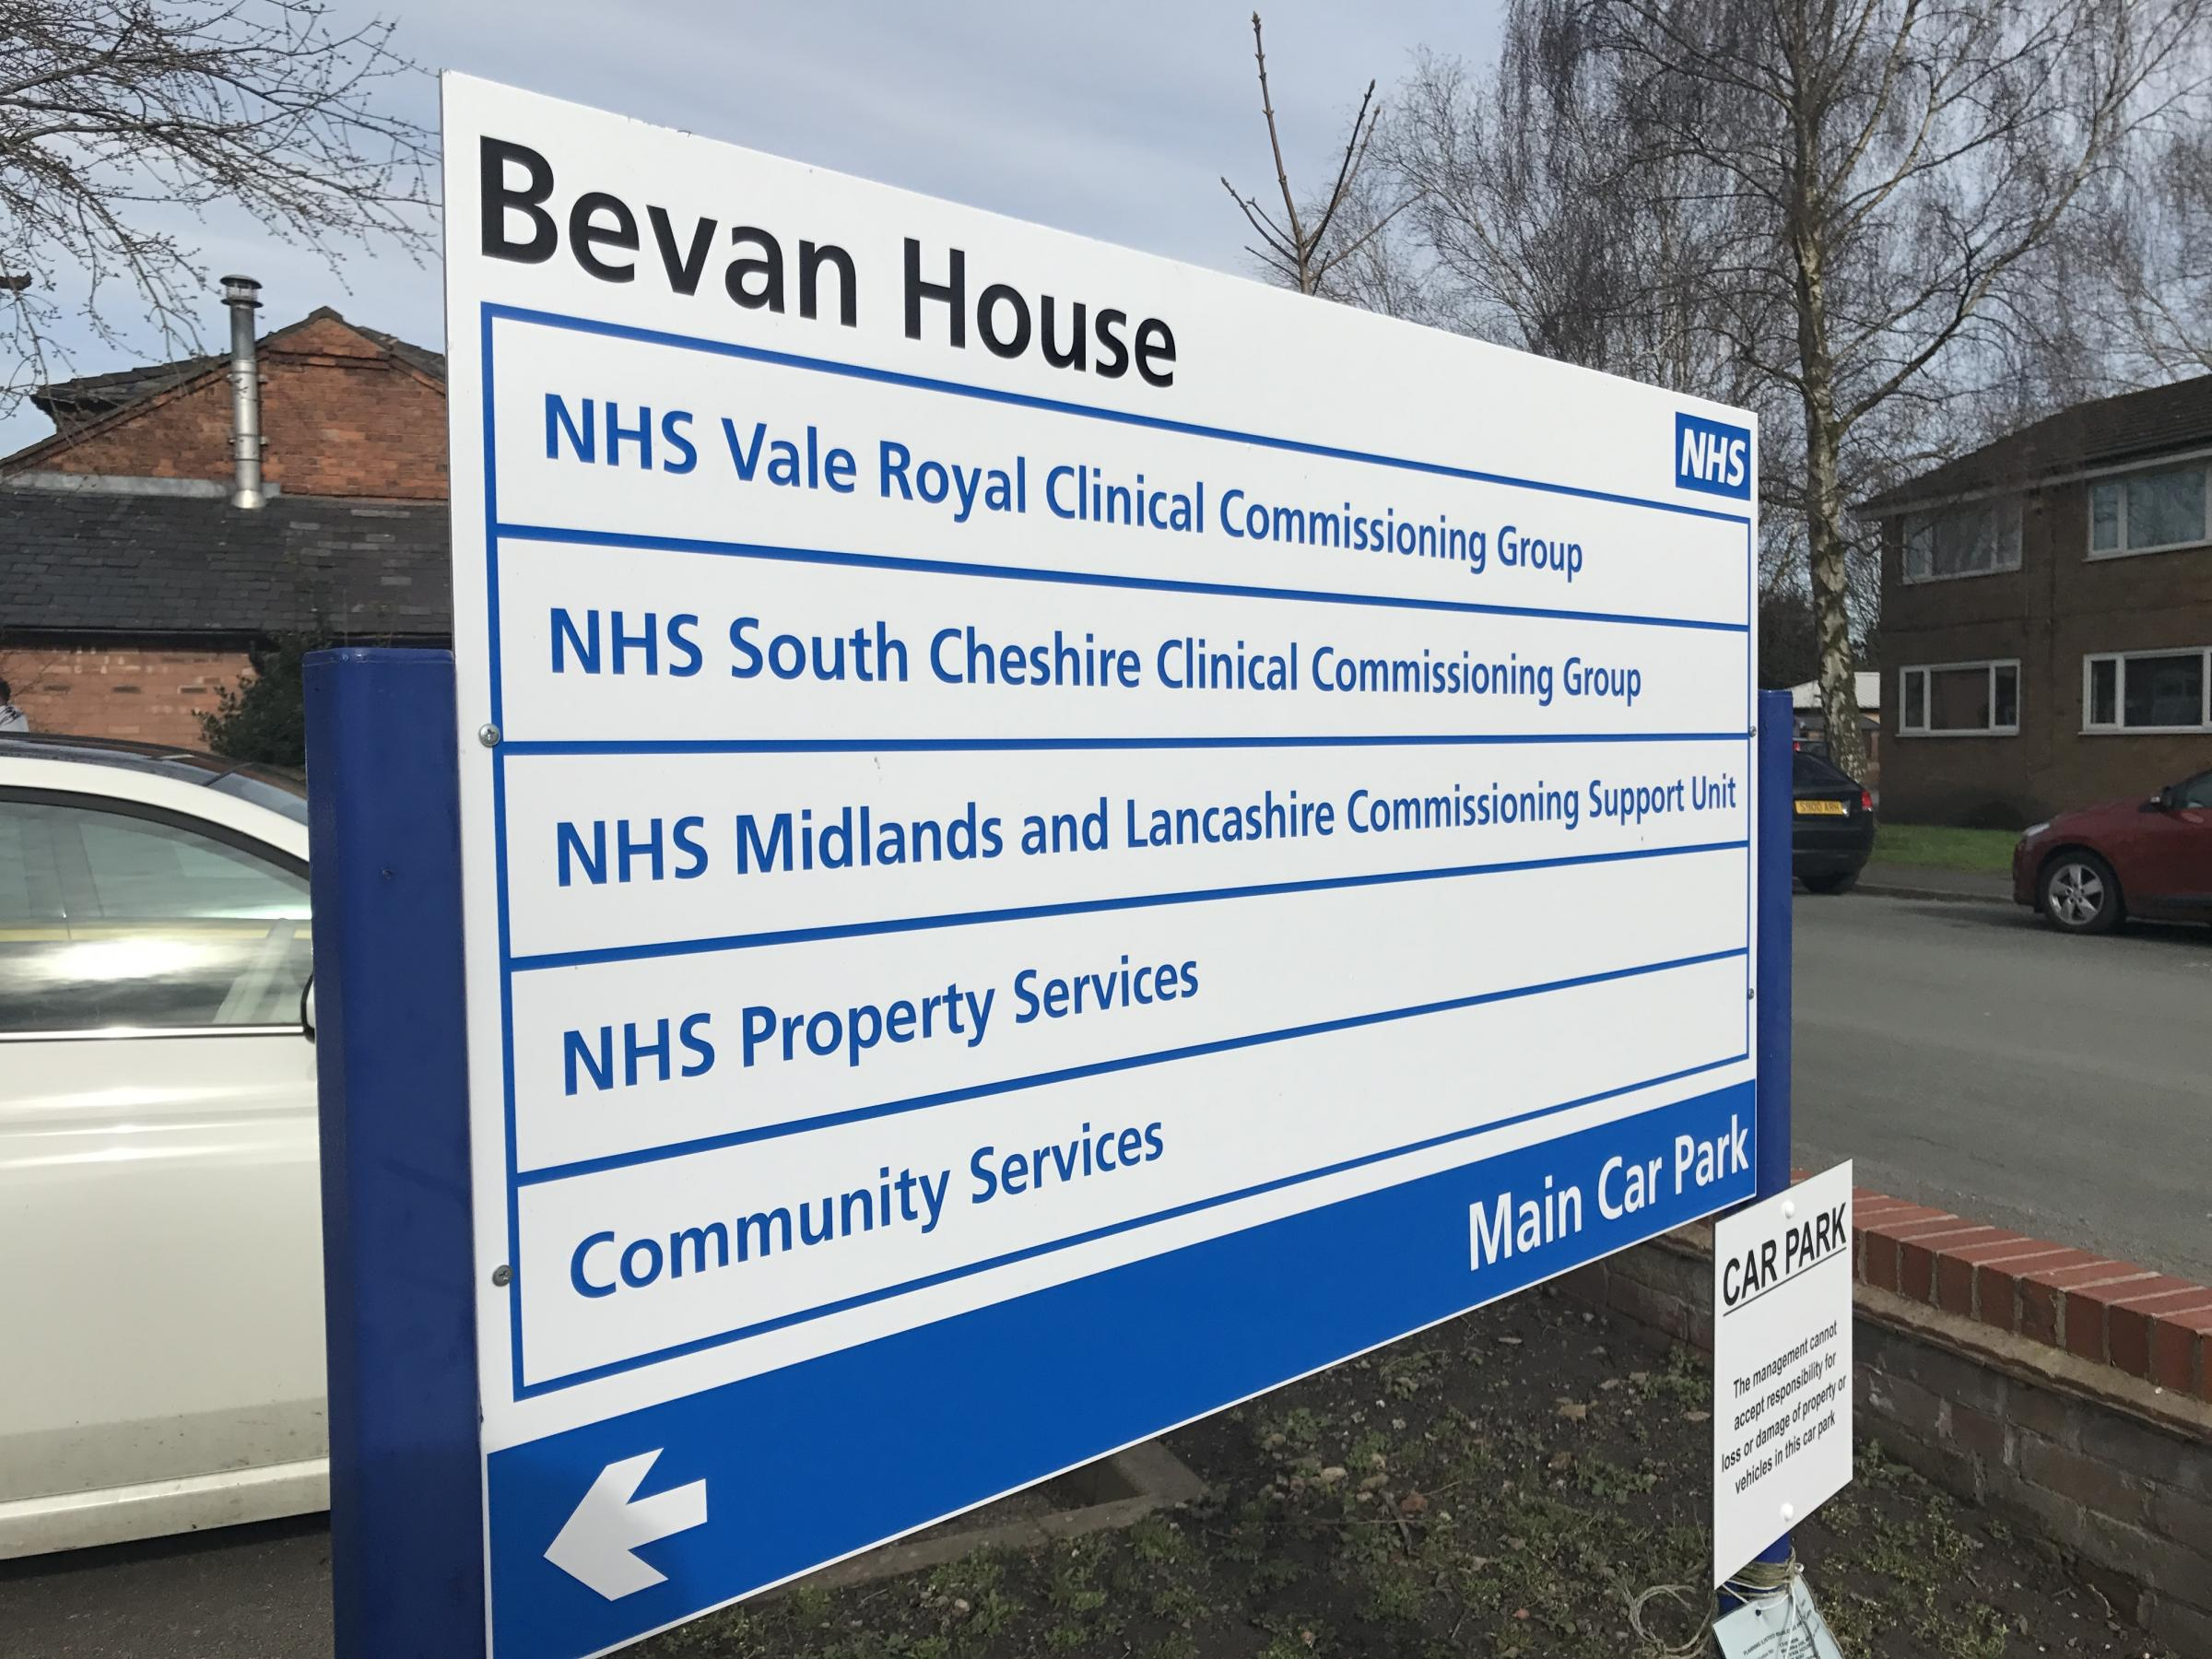 The governing body meeting took place at Bevan House in Nantwich